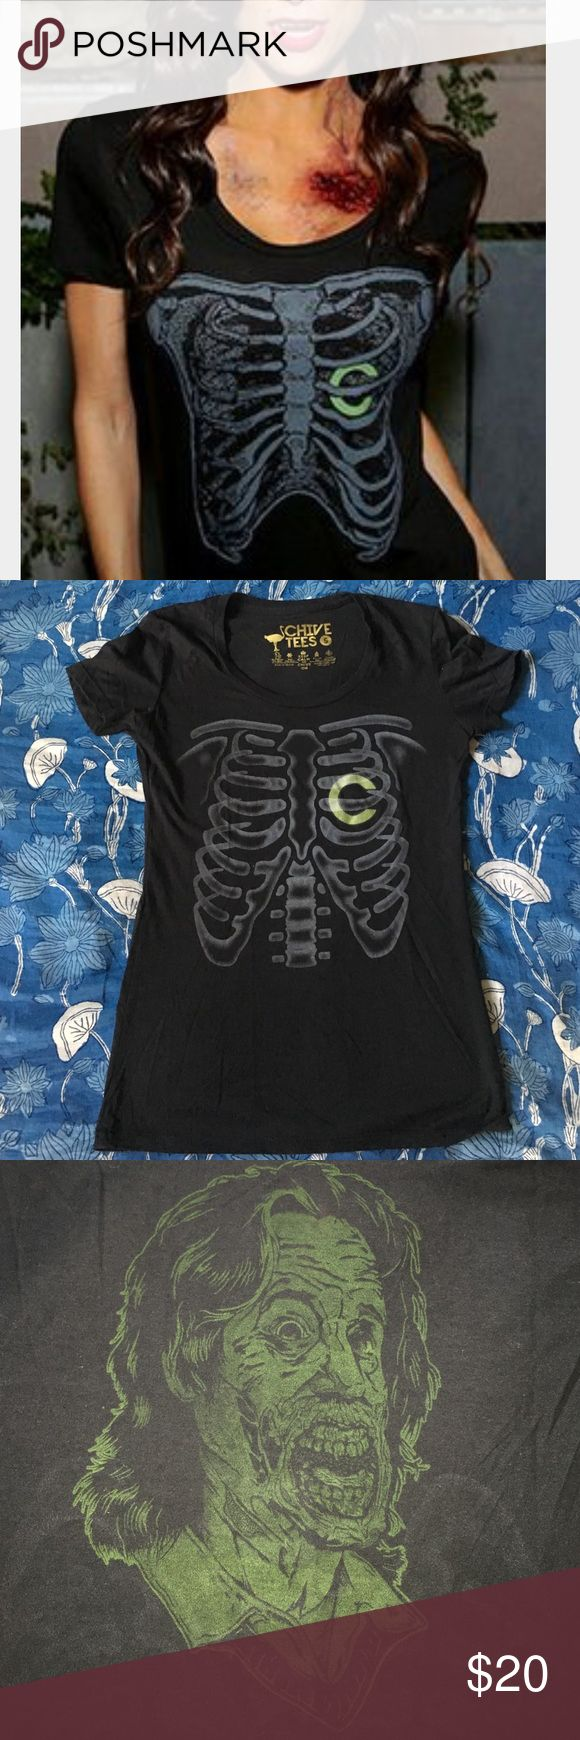 Chive Boneyard Tee Glow in the dark Chiver at heart tee. 60/40 cotton-poly blend. You can flip the shirt over your head for a scary surprise. KCCO! Discontinued style. Chive Tees Tops Tees - Short Sleeve